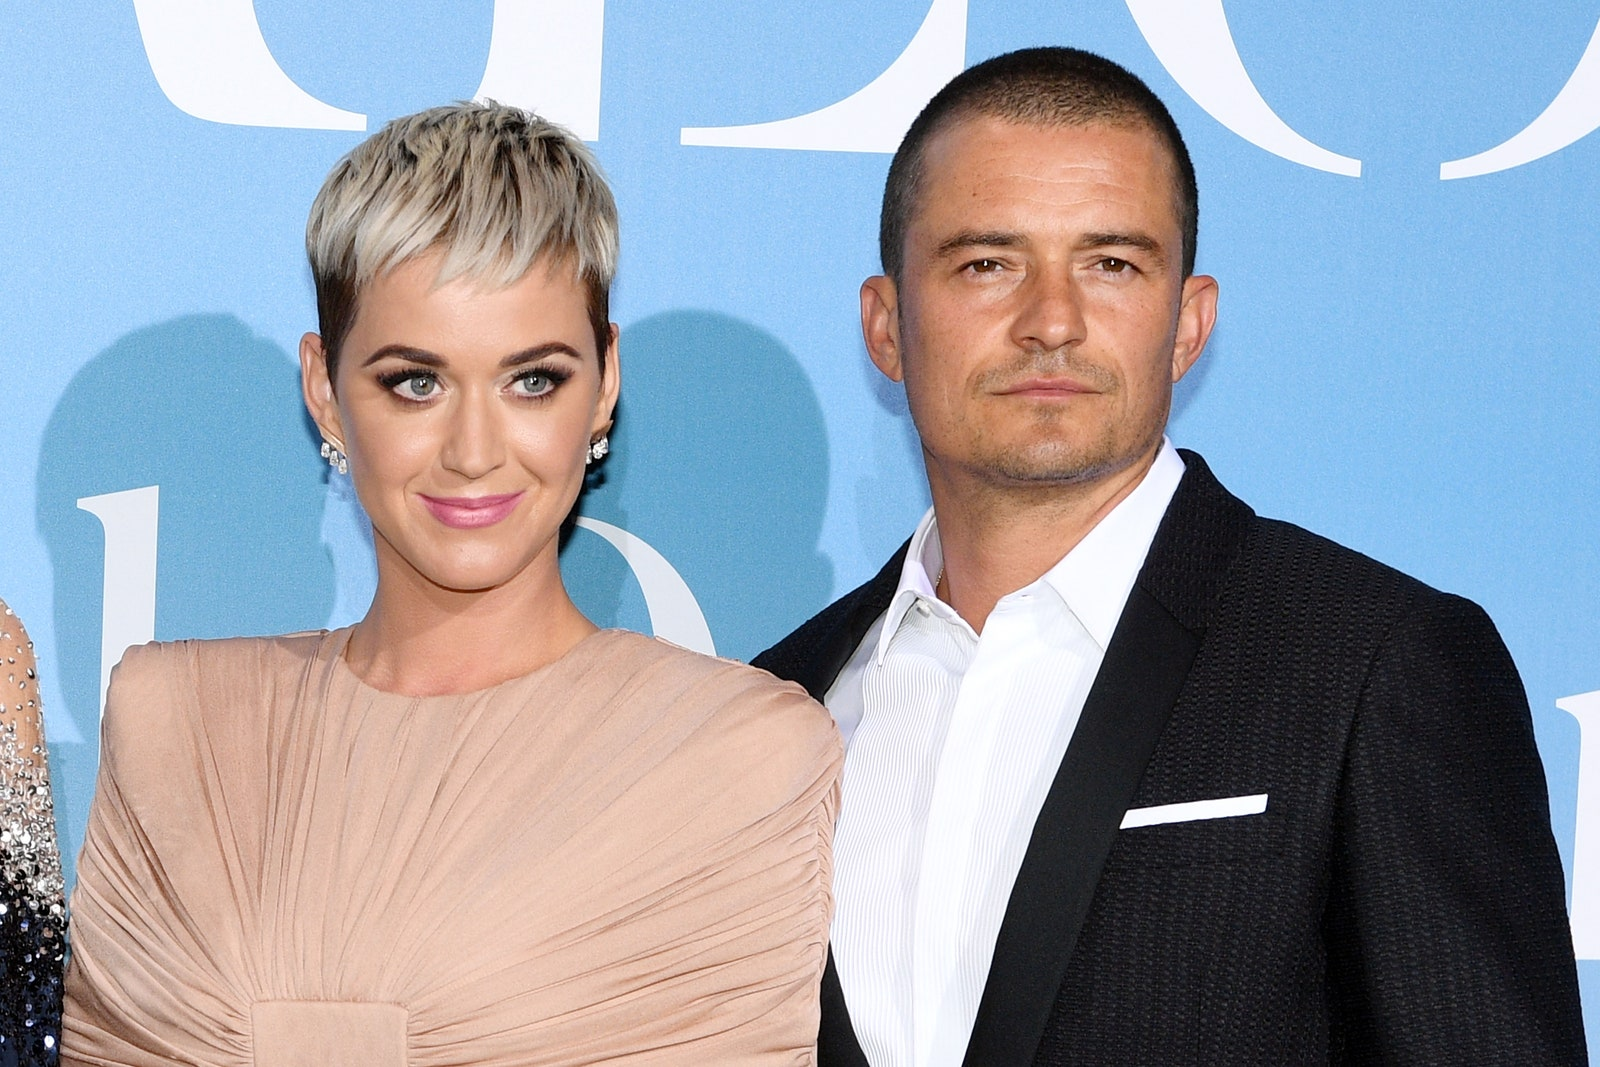 Katy Perry and Orlando attend the Gala for the Global Ocean in September 2018.